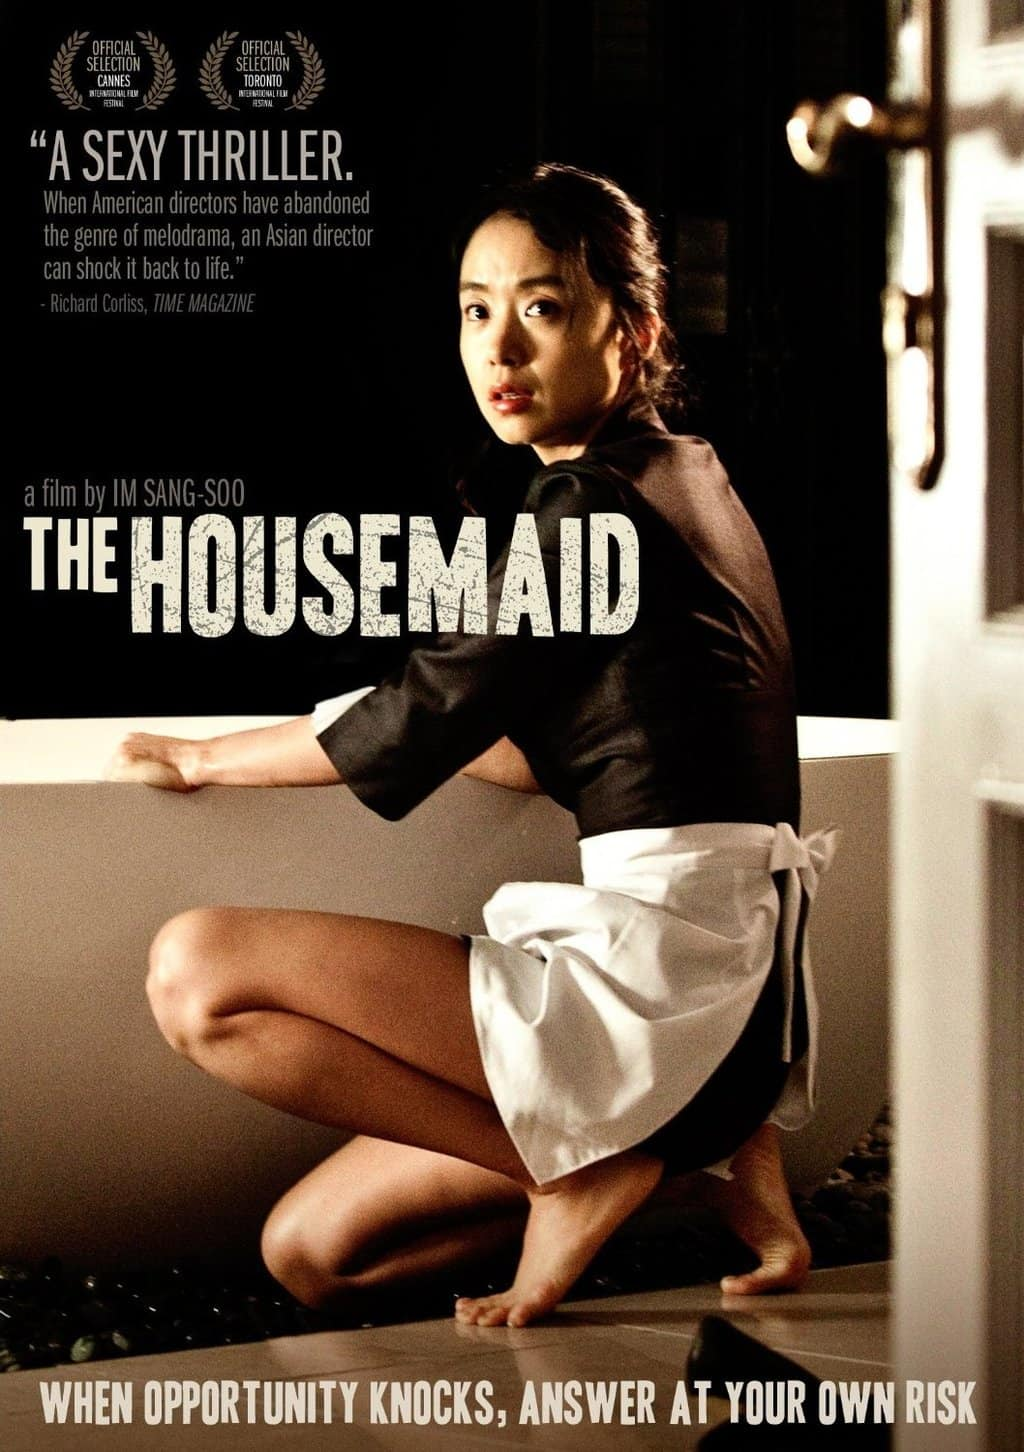 film reviews | movies | features | BRWC Review: The Housemaid (2010)